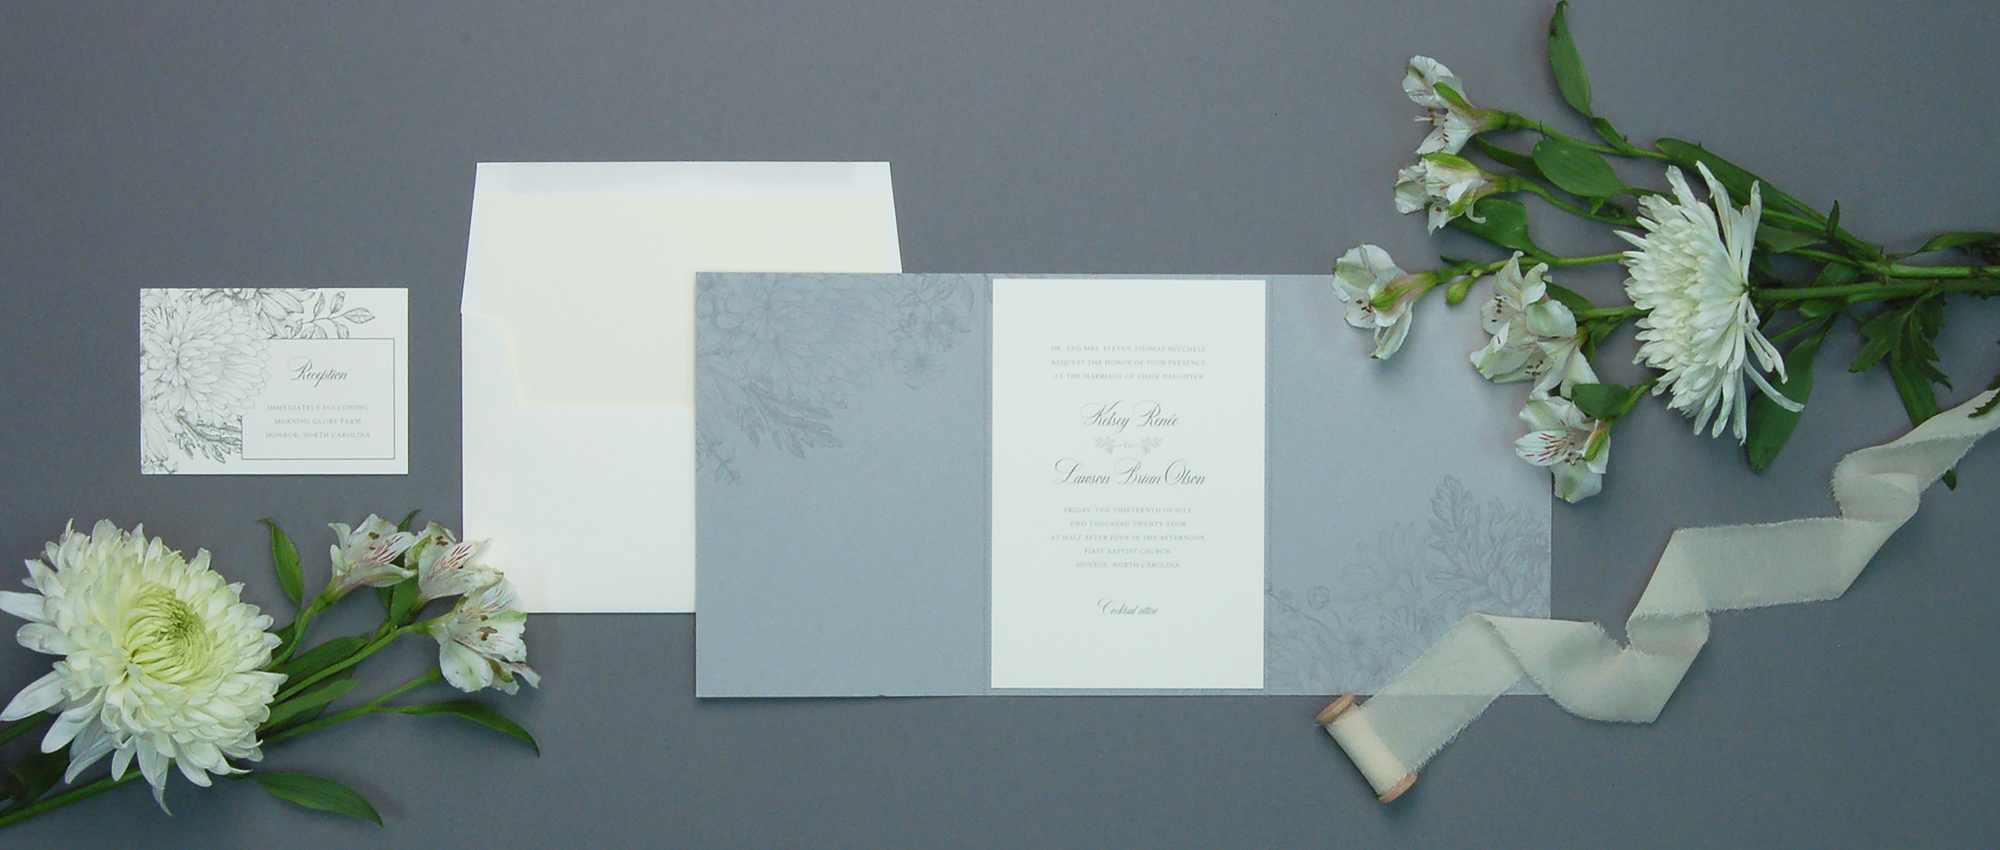 Rosemary suite from the Always wedding collection